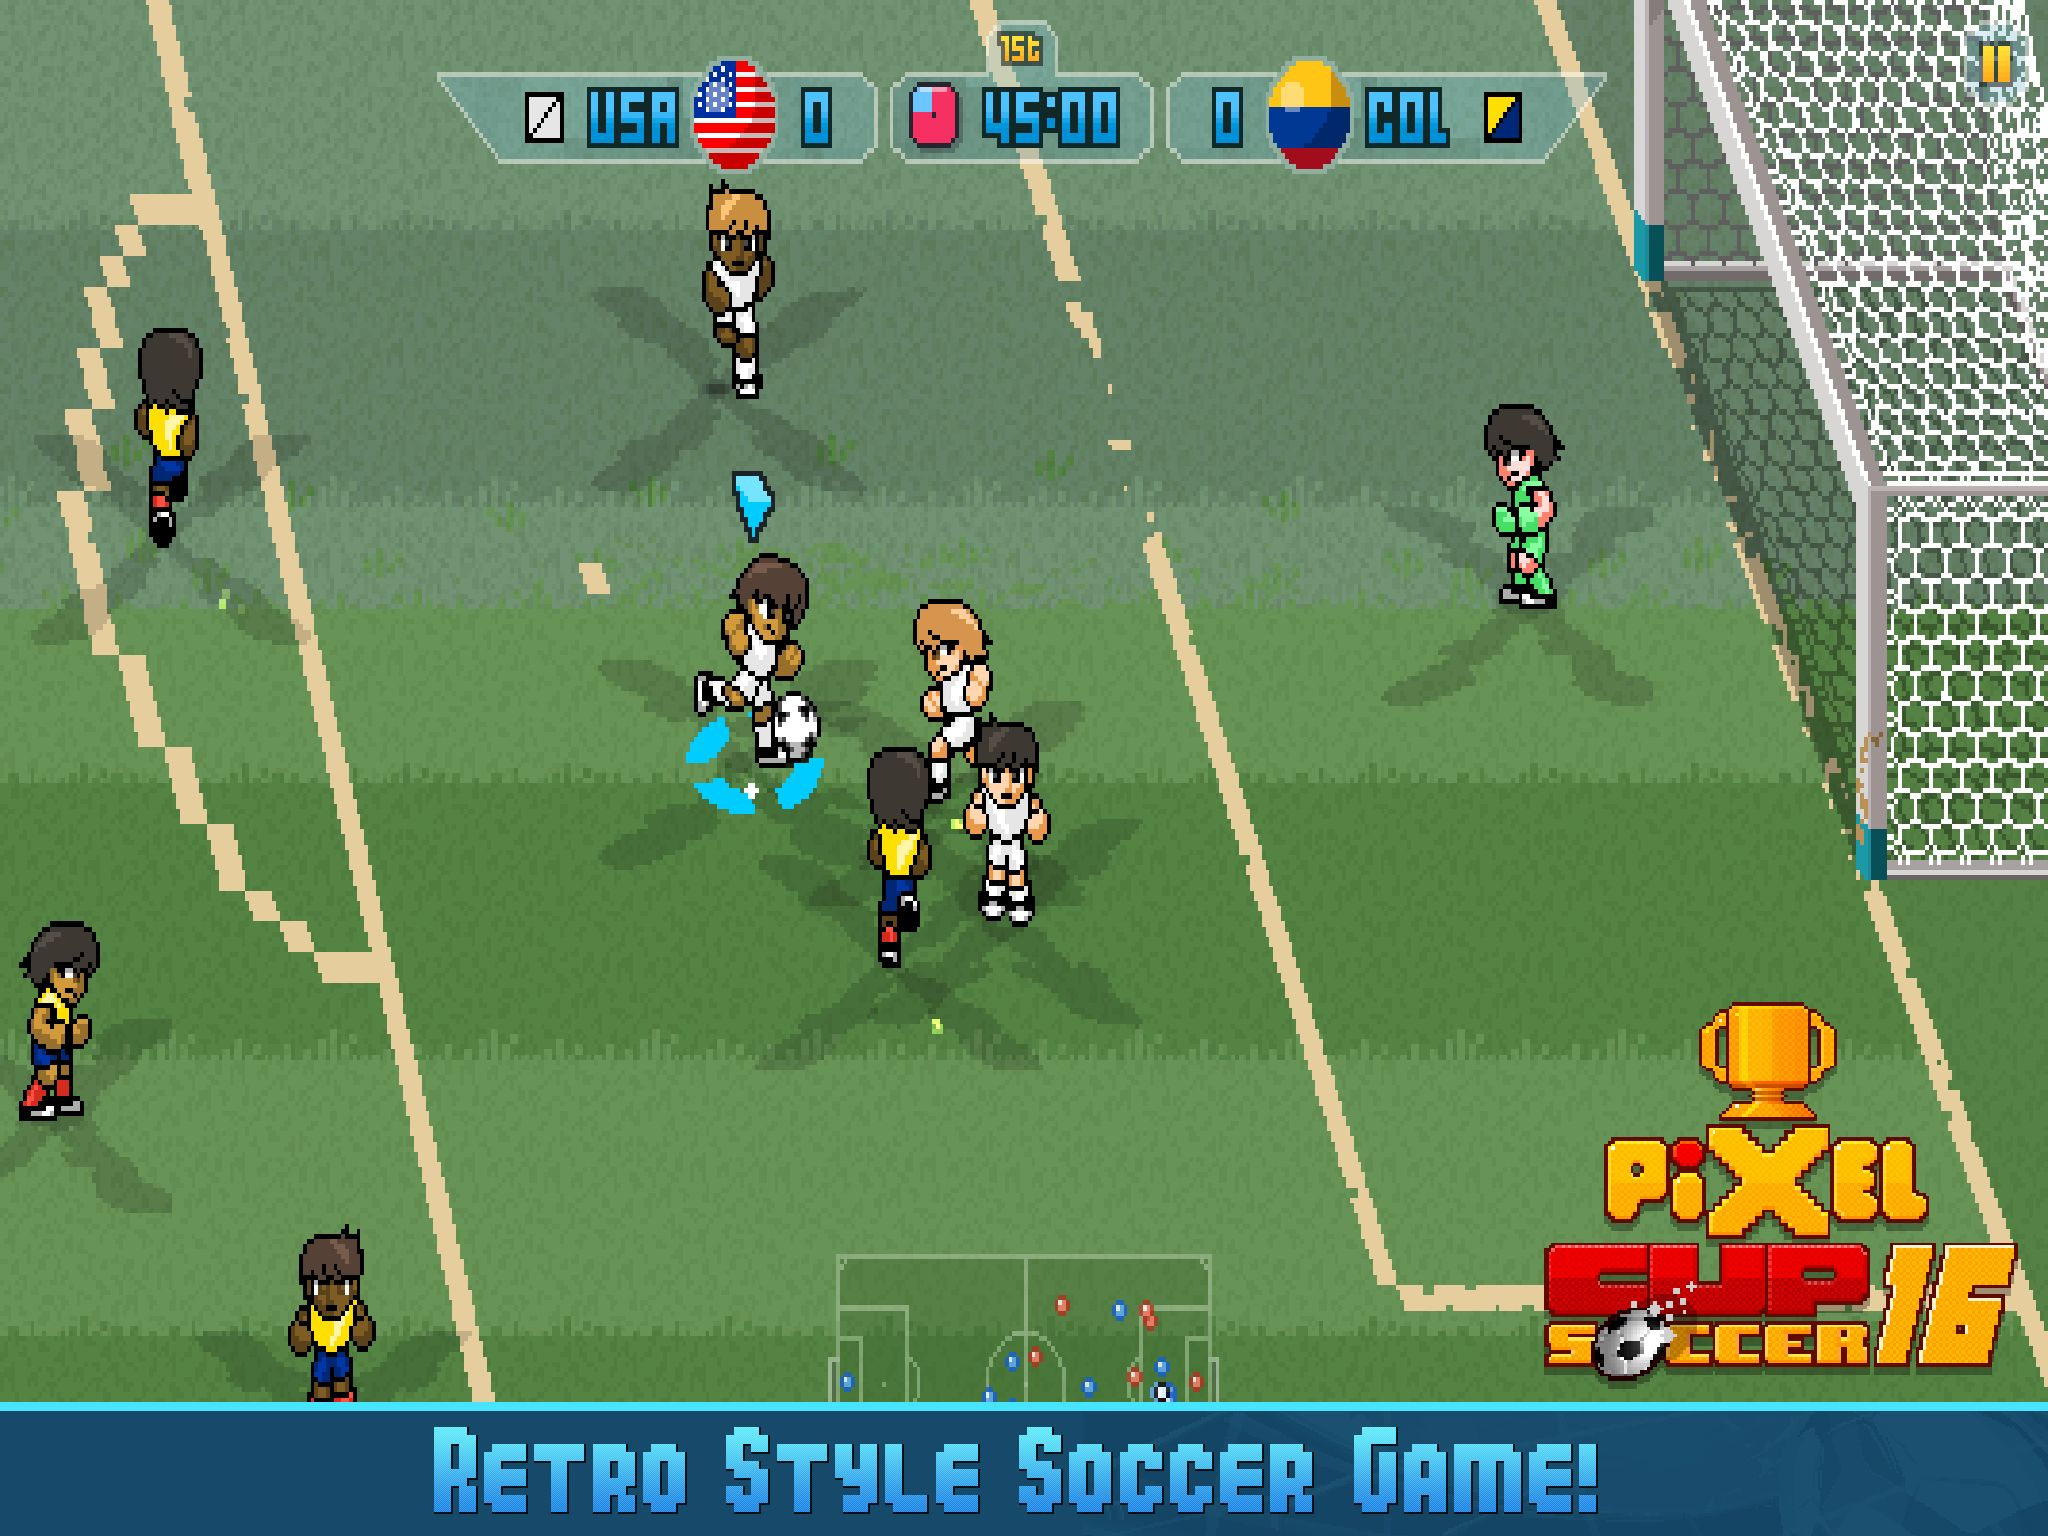 [Update] Pixel Cup Soccer 16 could be the best mobile retro football game yet, out now